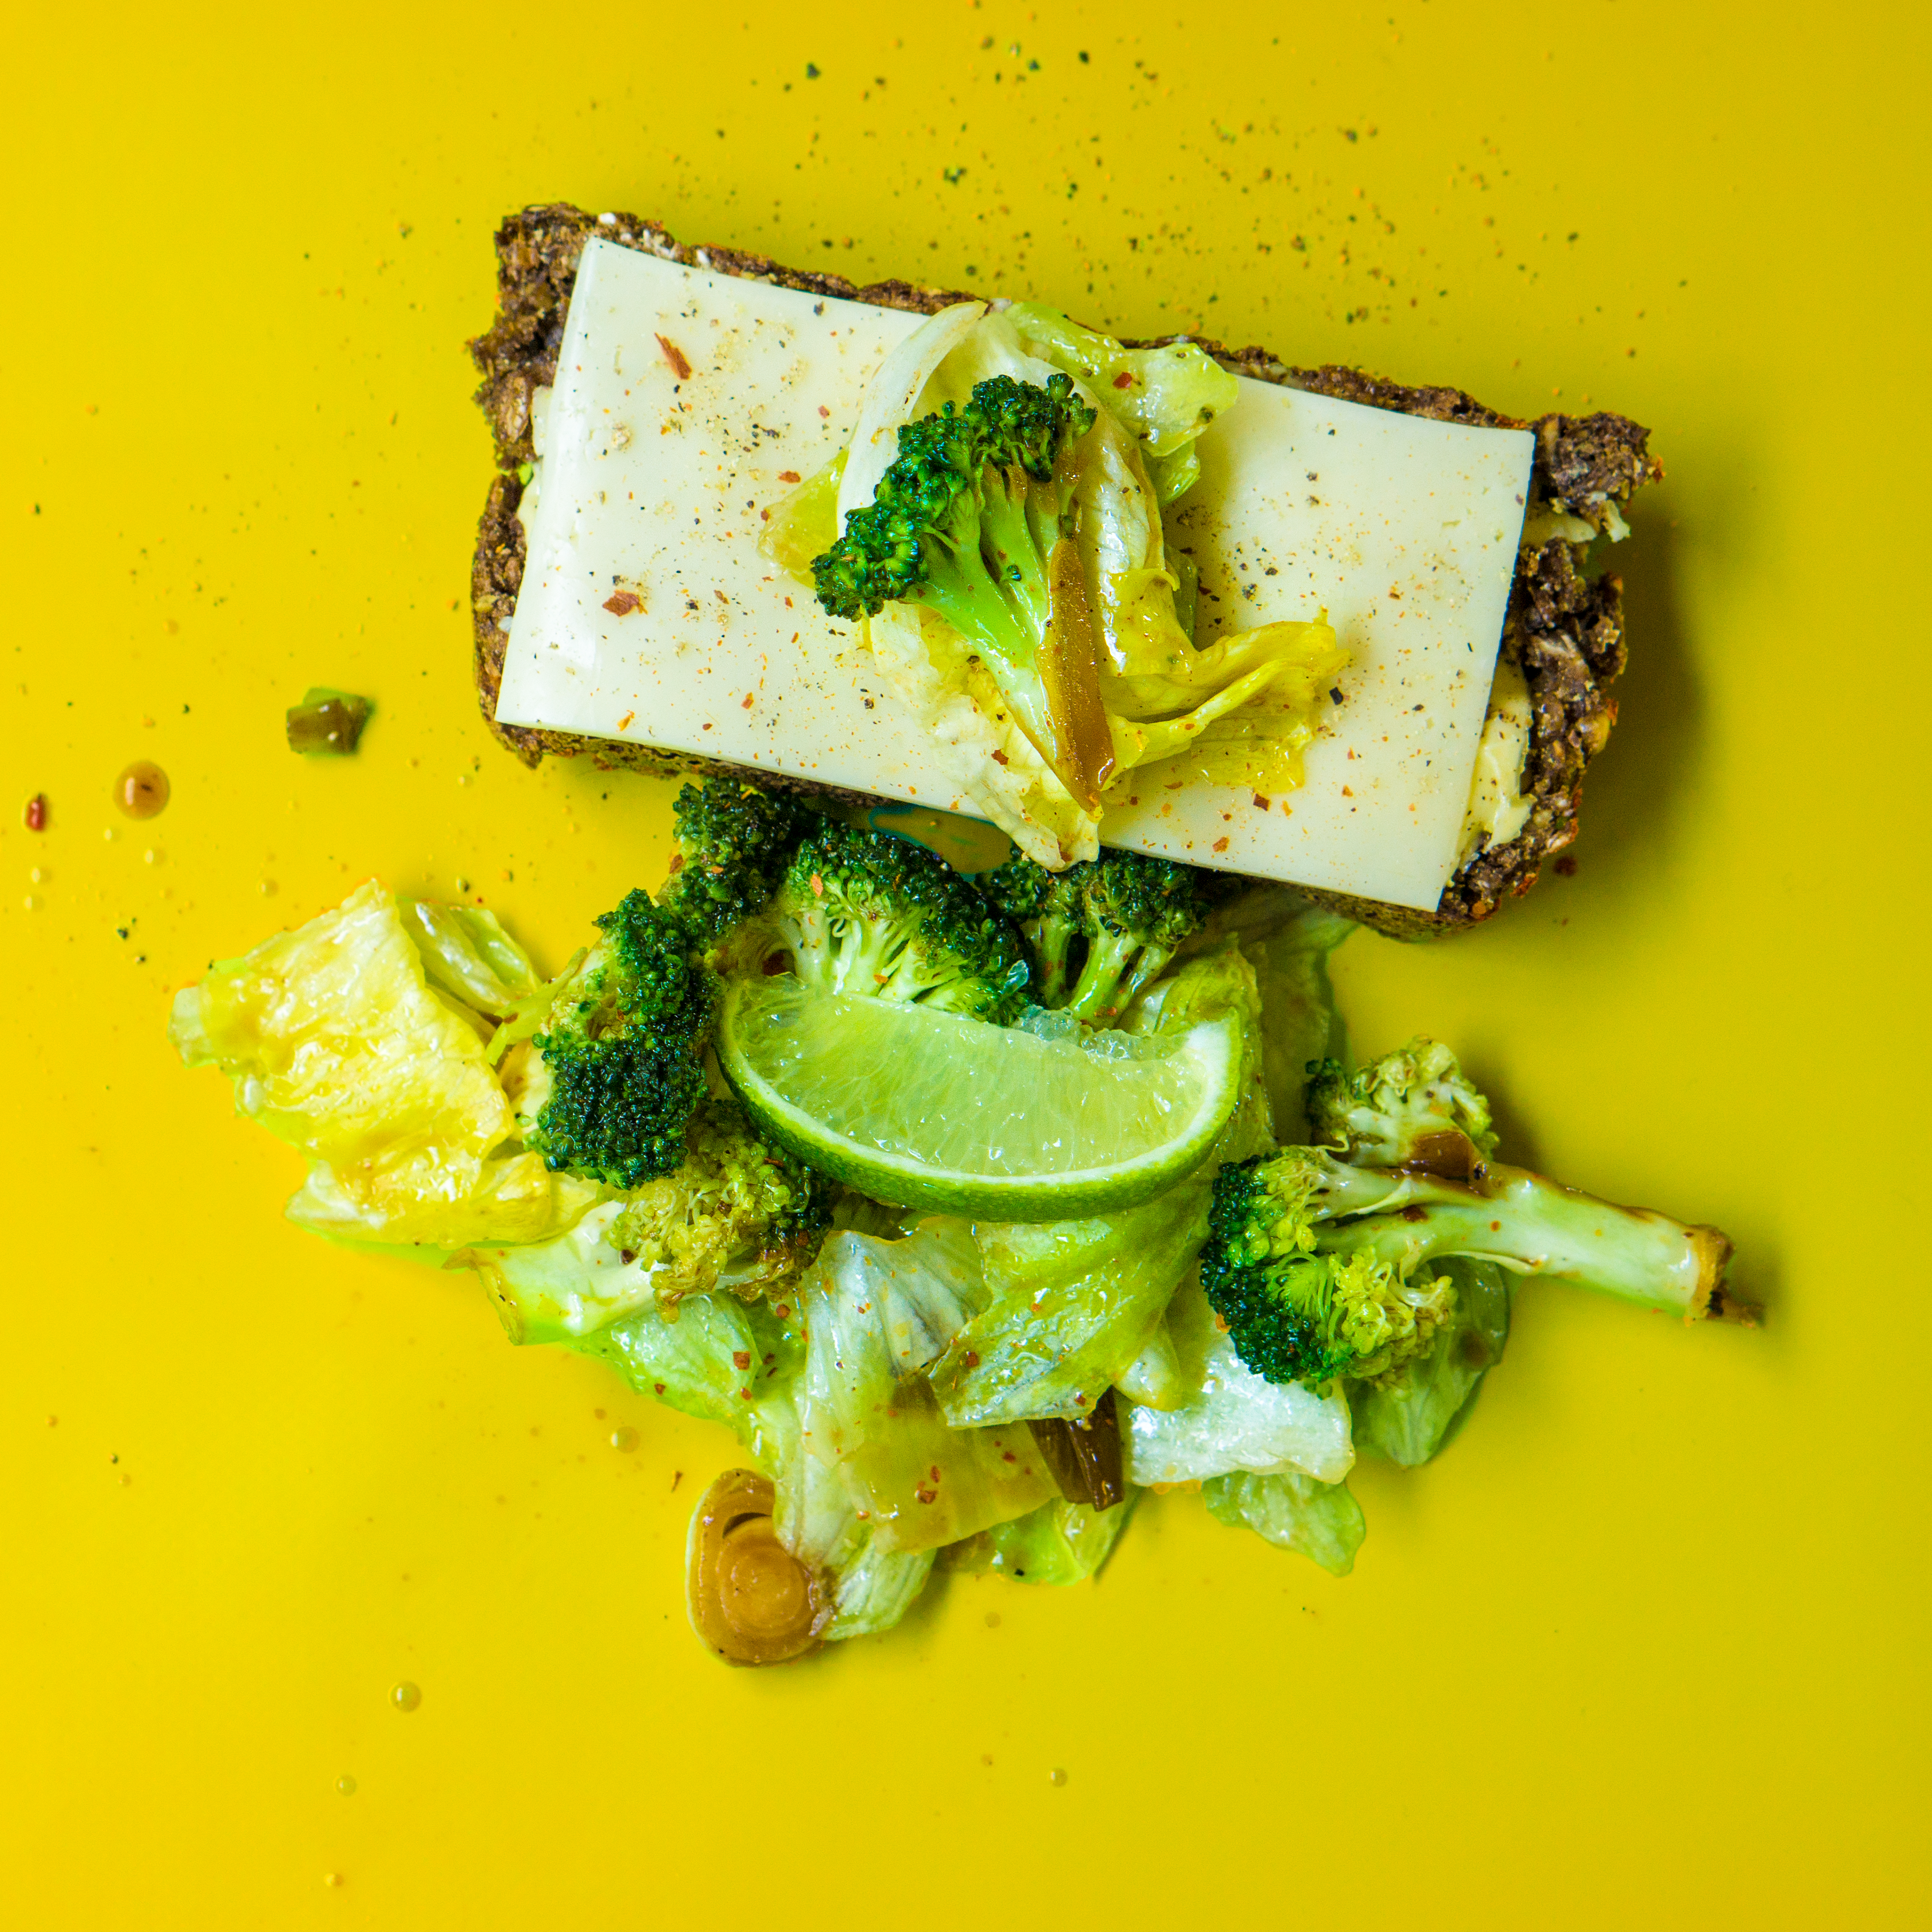 Photo of Green Broccoli, White Cheese and Green Cabbage on Yellow Surface, Herb, Vegetable, Tasty, Slice, HQ Photo